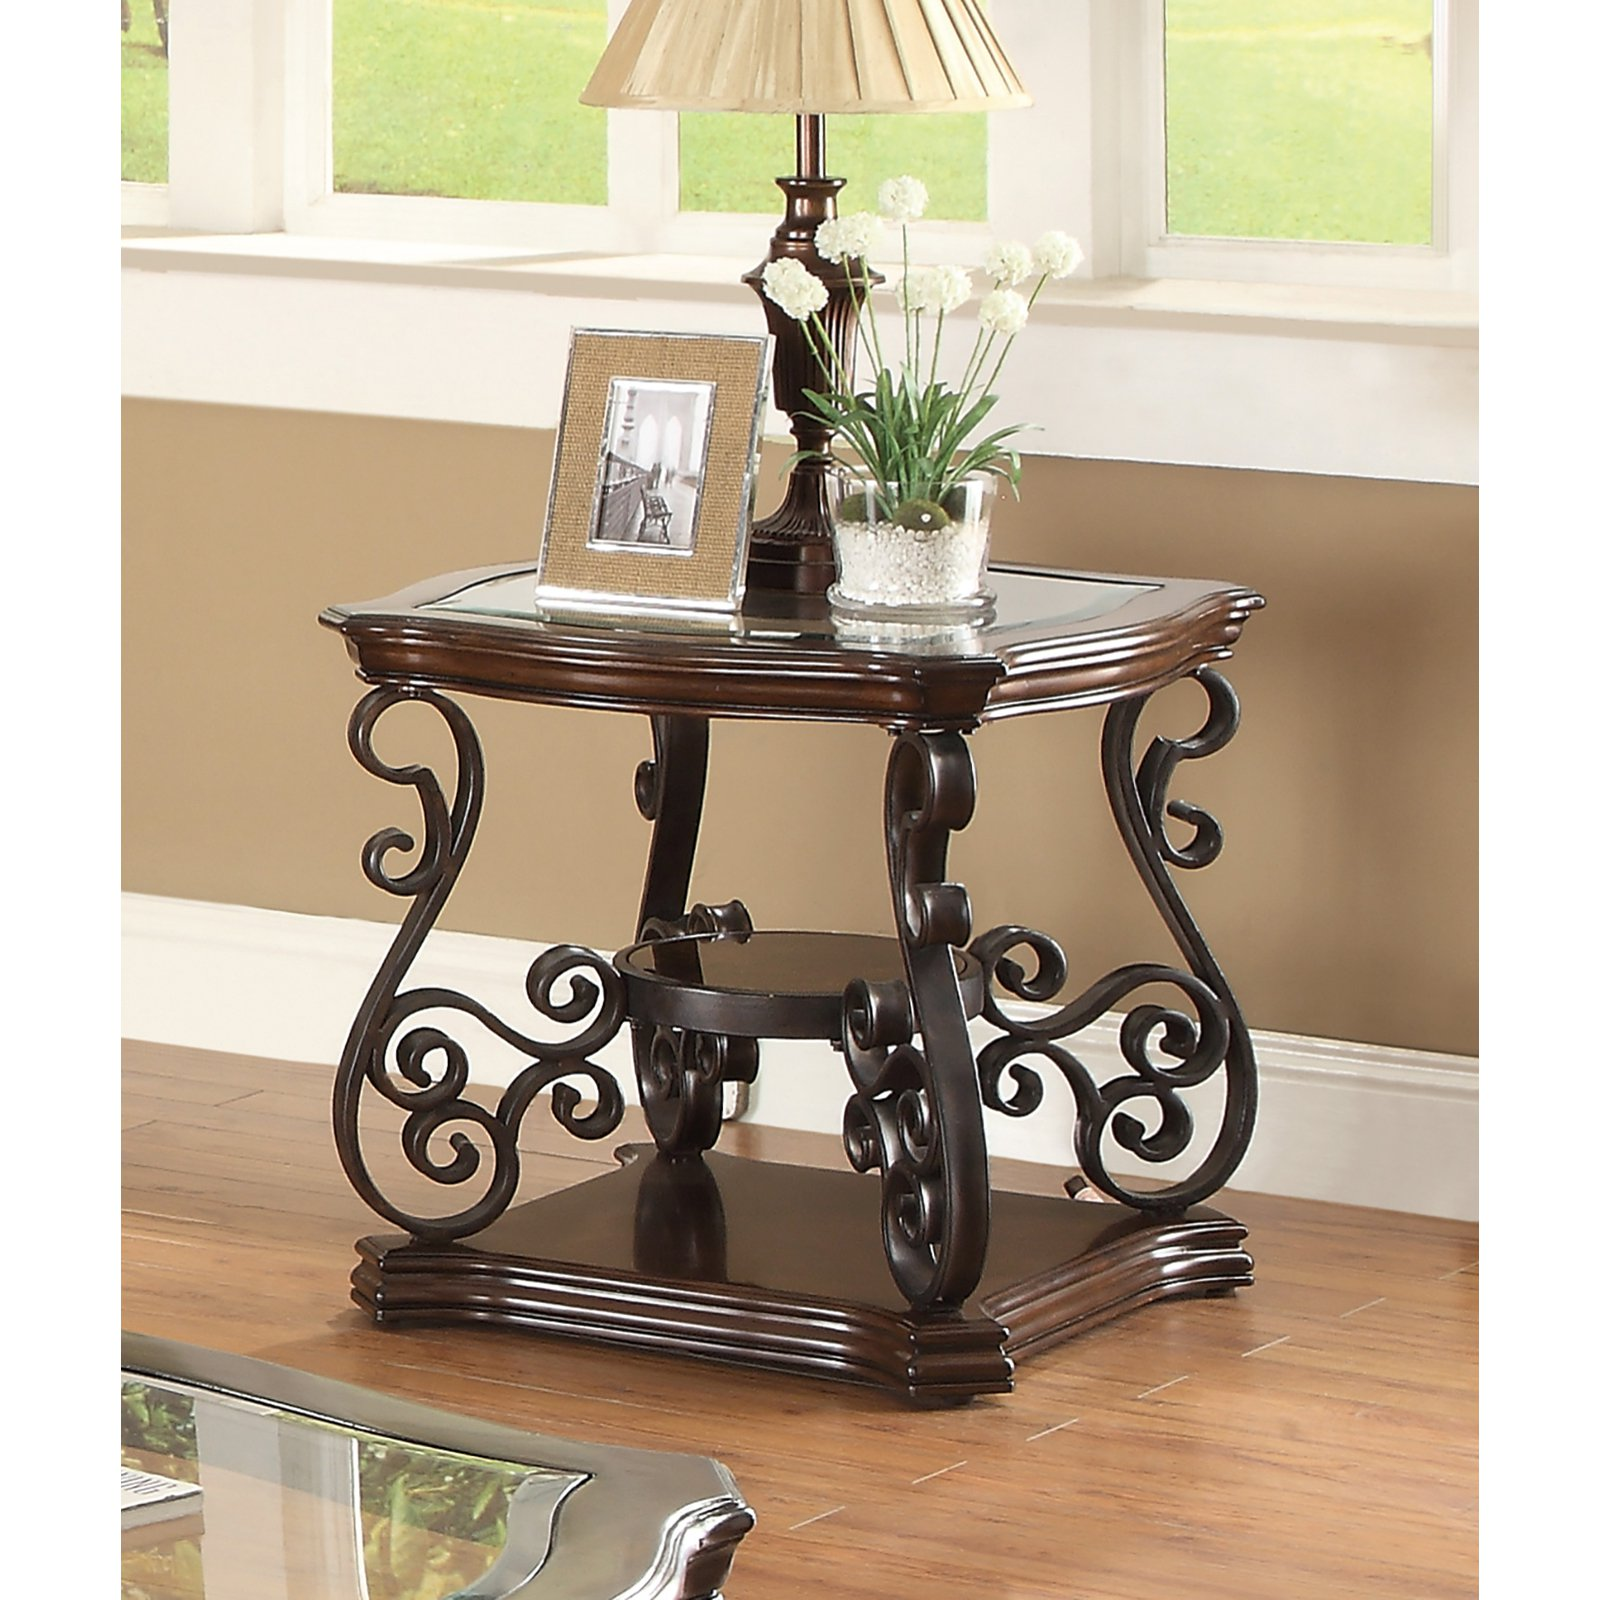 Coaster Furniture Glass Top End Table - Dark Brown